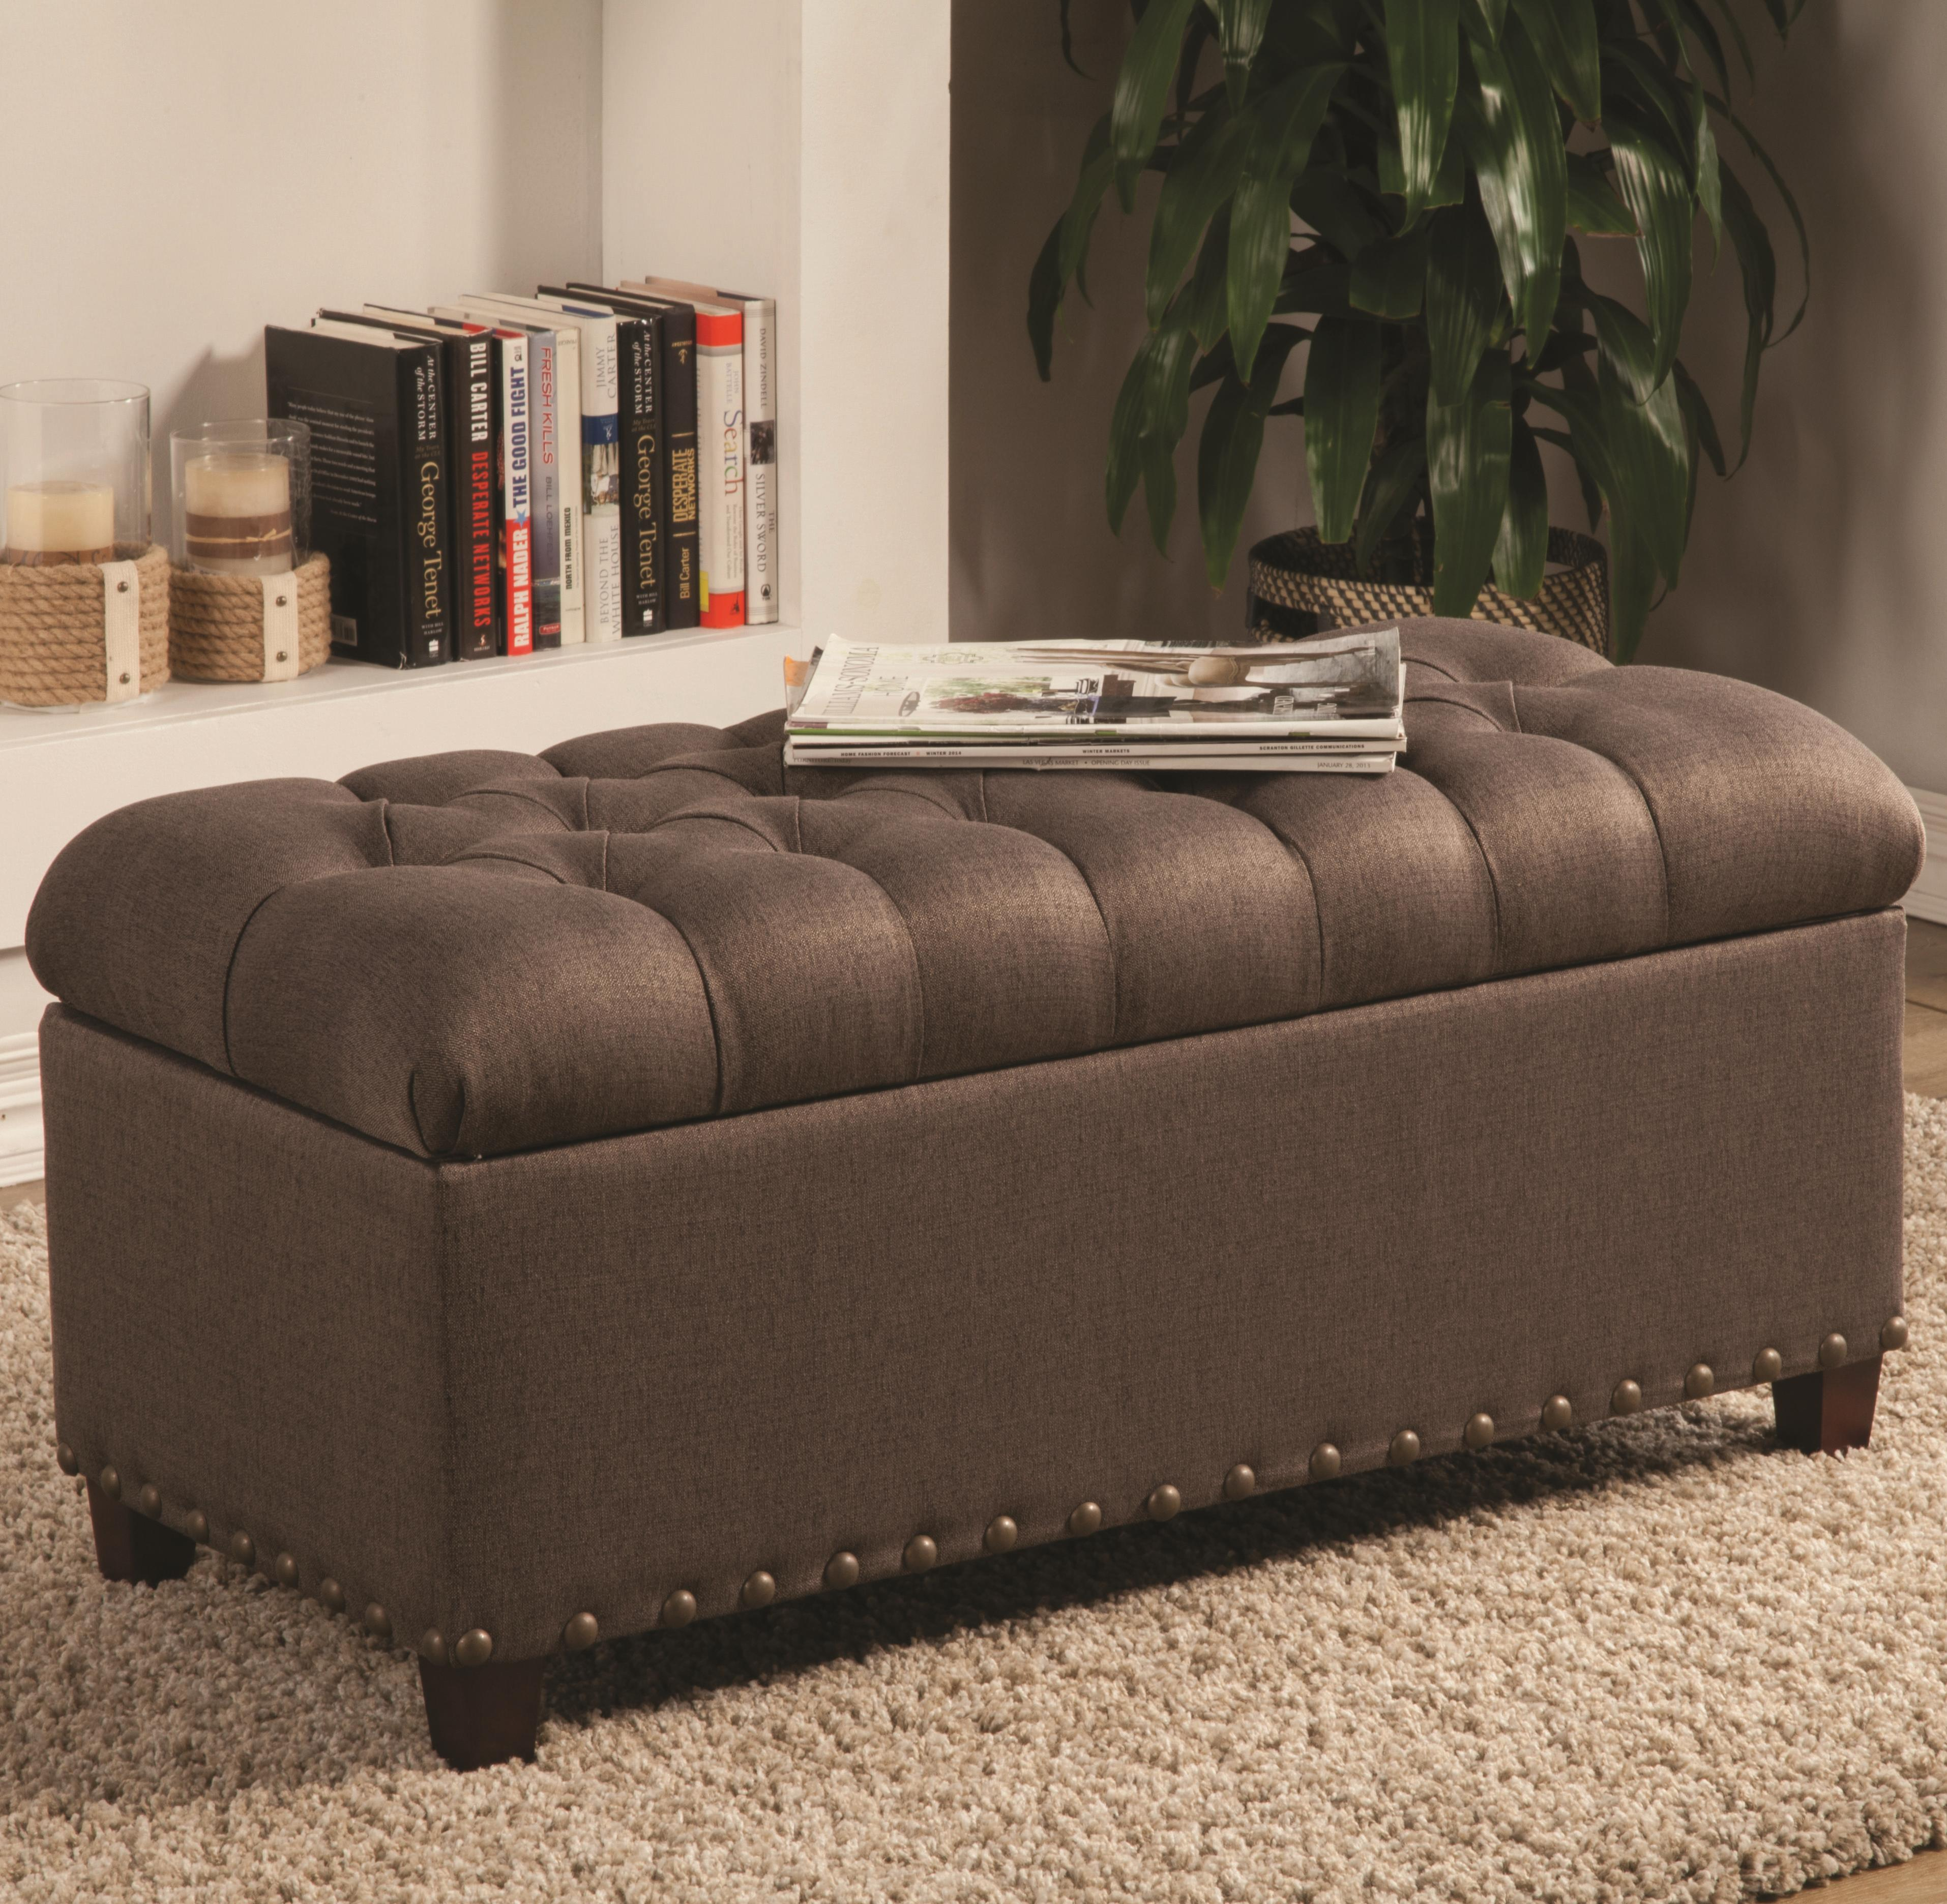 Coaster Ottomans Storage Bench - Item Number: 500065